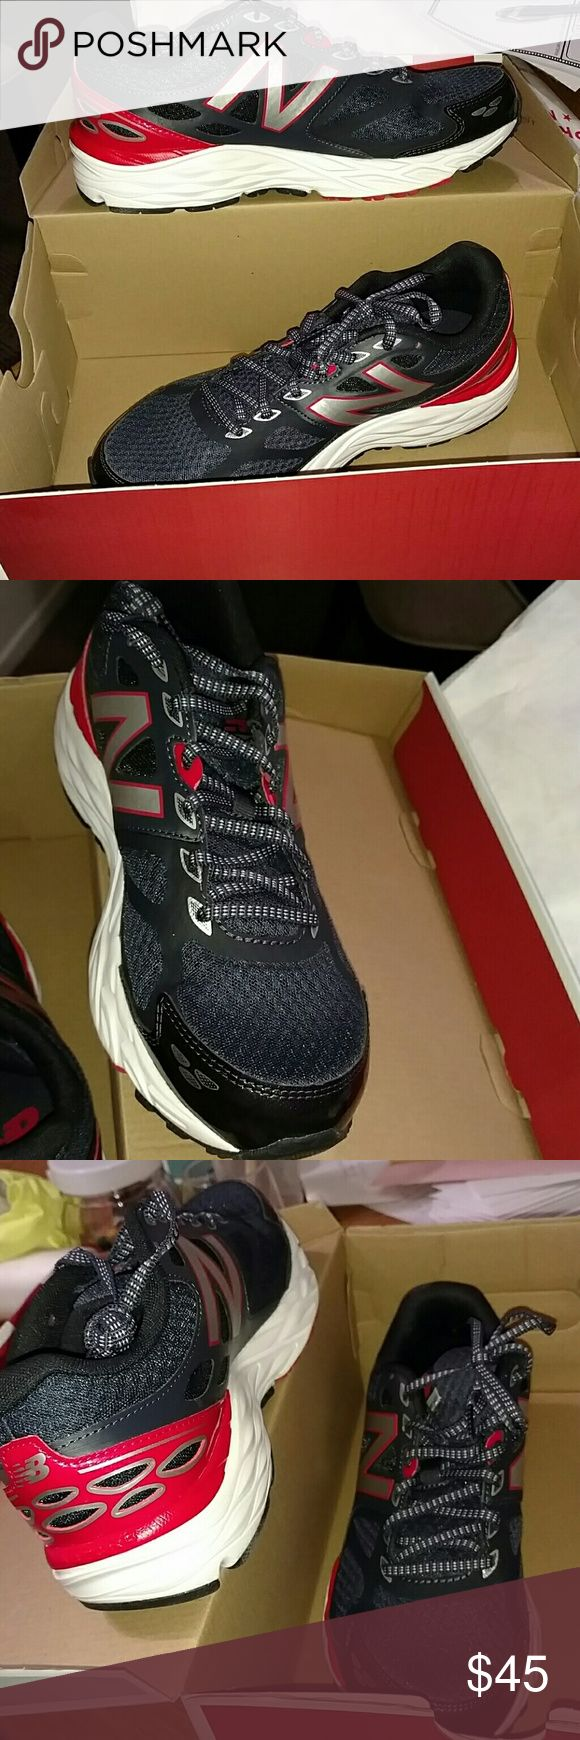 New balance mens size 8 running sneaker New balance size 8 running sneaker. Running course black and red. NWT New Balance Shoes Sneakers